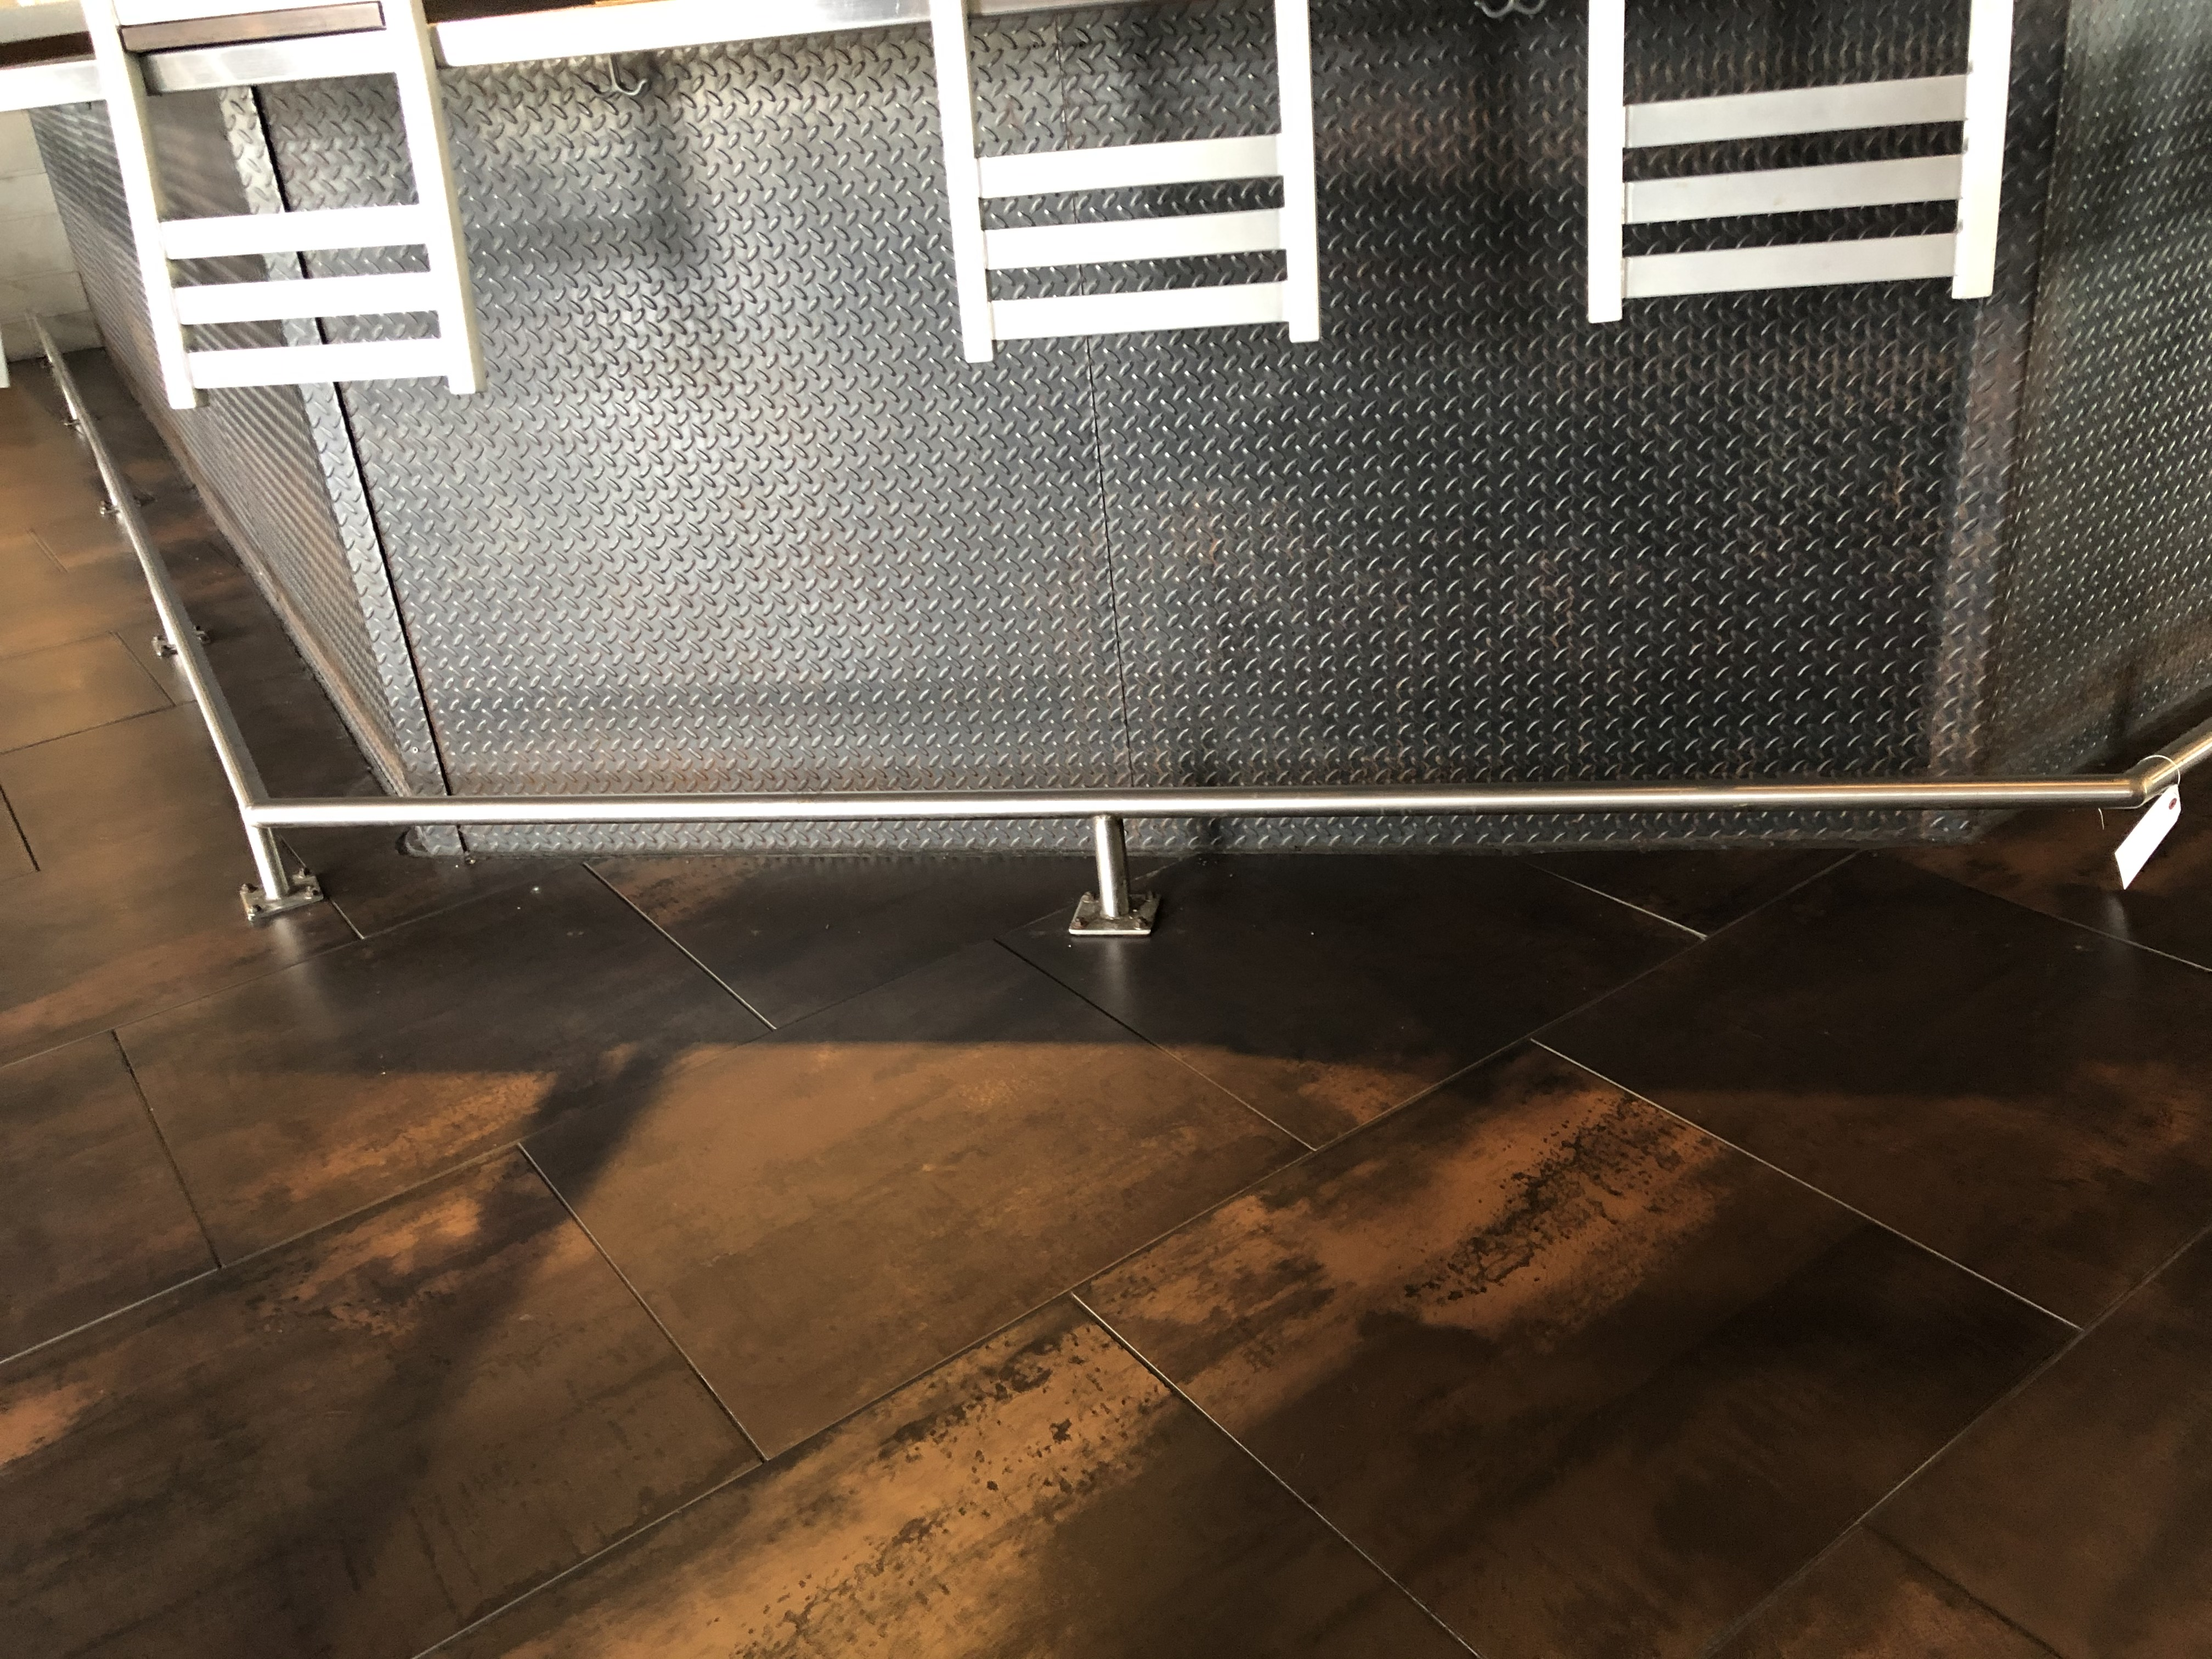 56' Total of Stainless Steel Footrail On The Base of the Bar (To Be Removed By Purchaser As are - Image 3 of 3